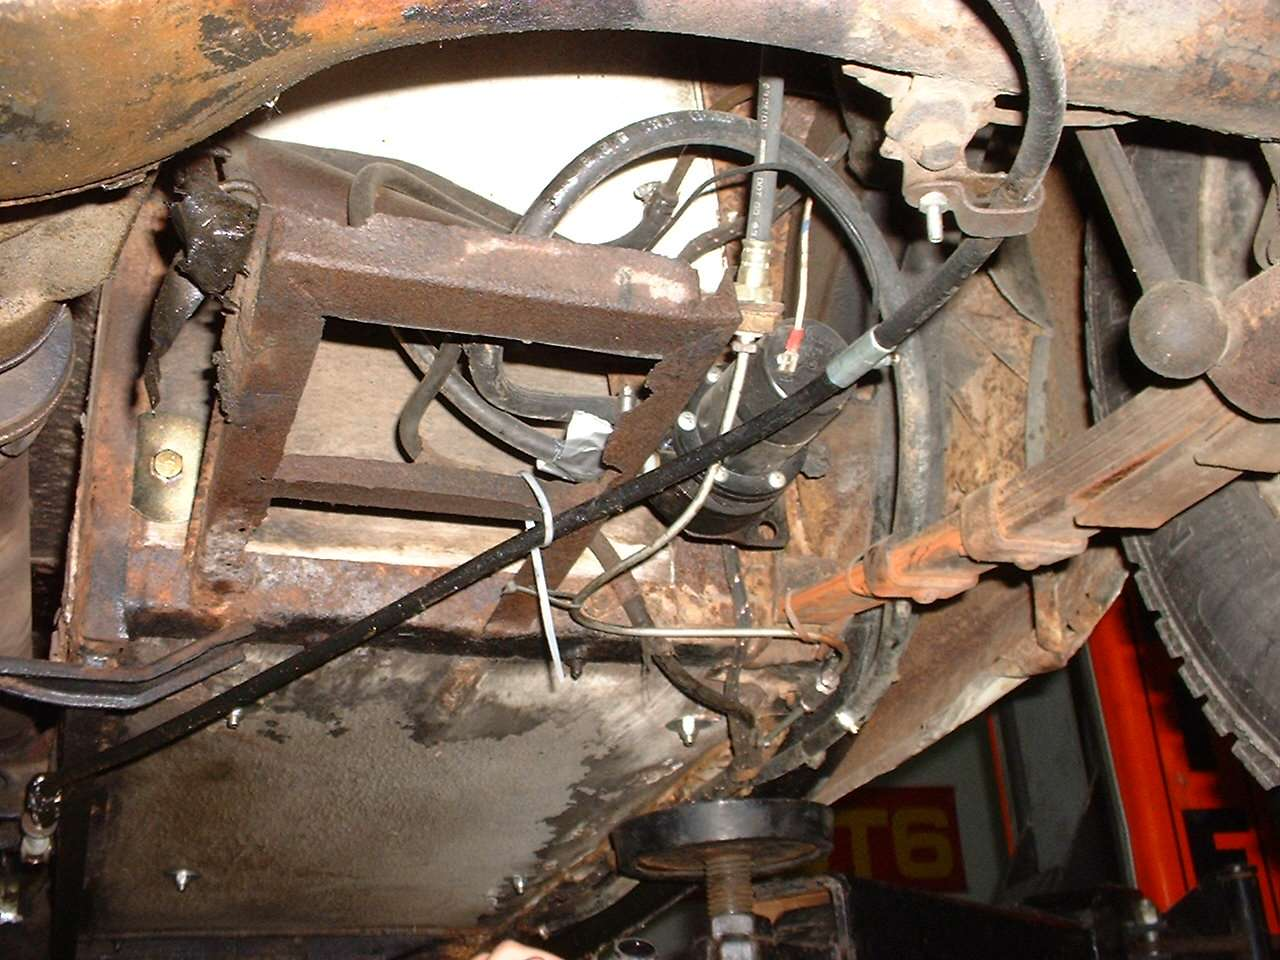 Mgb Rear Brake Line Routing Best 2018 Wiring On Mga 1600 Forum Mg Experience Forums The Rh Mgexp Ford System Diagram Drum Repair Panels Gt Brown And Gammons